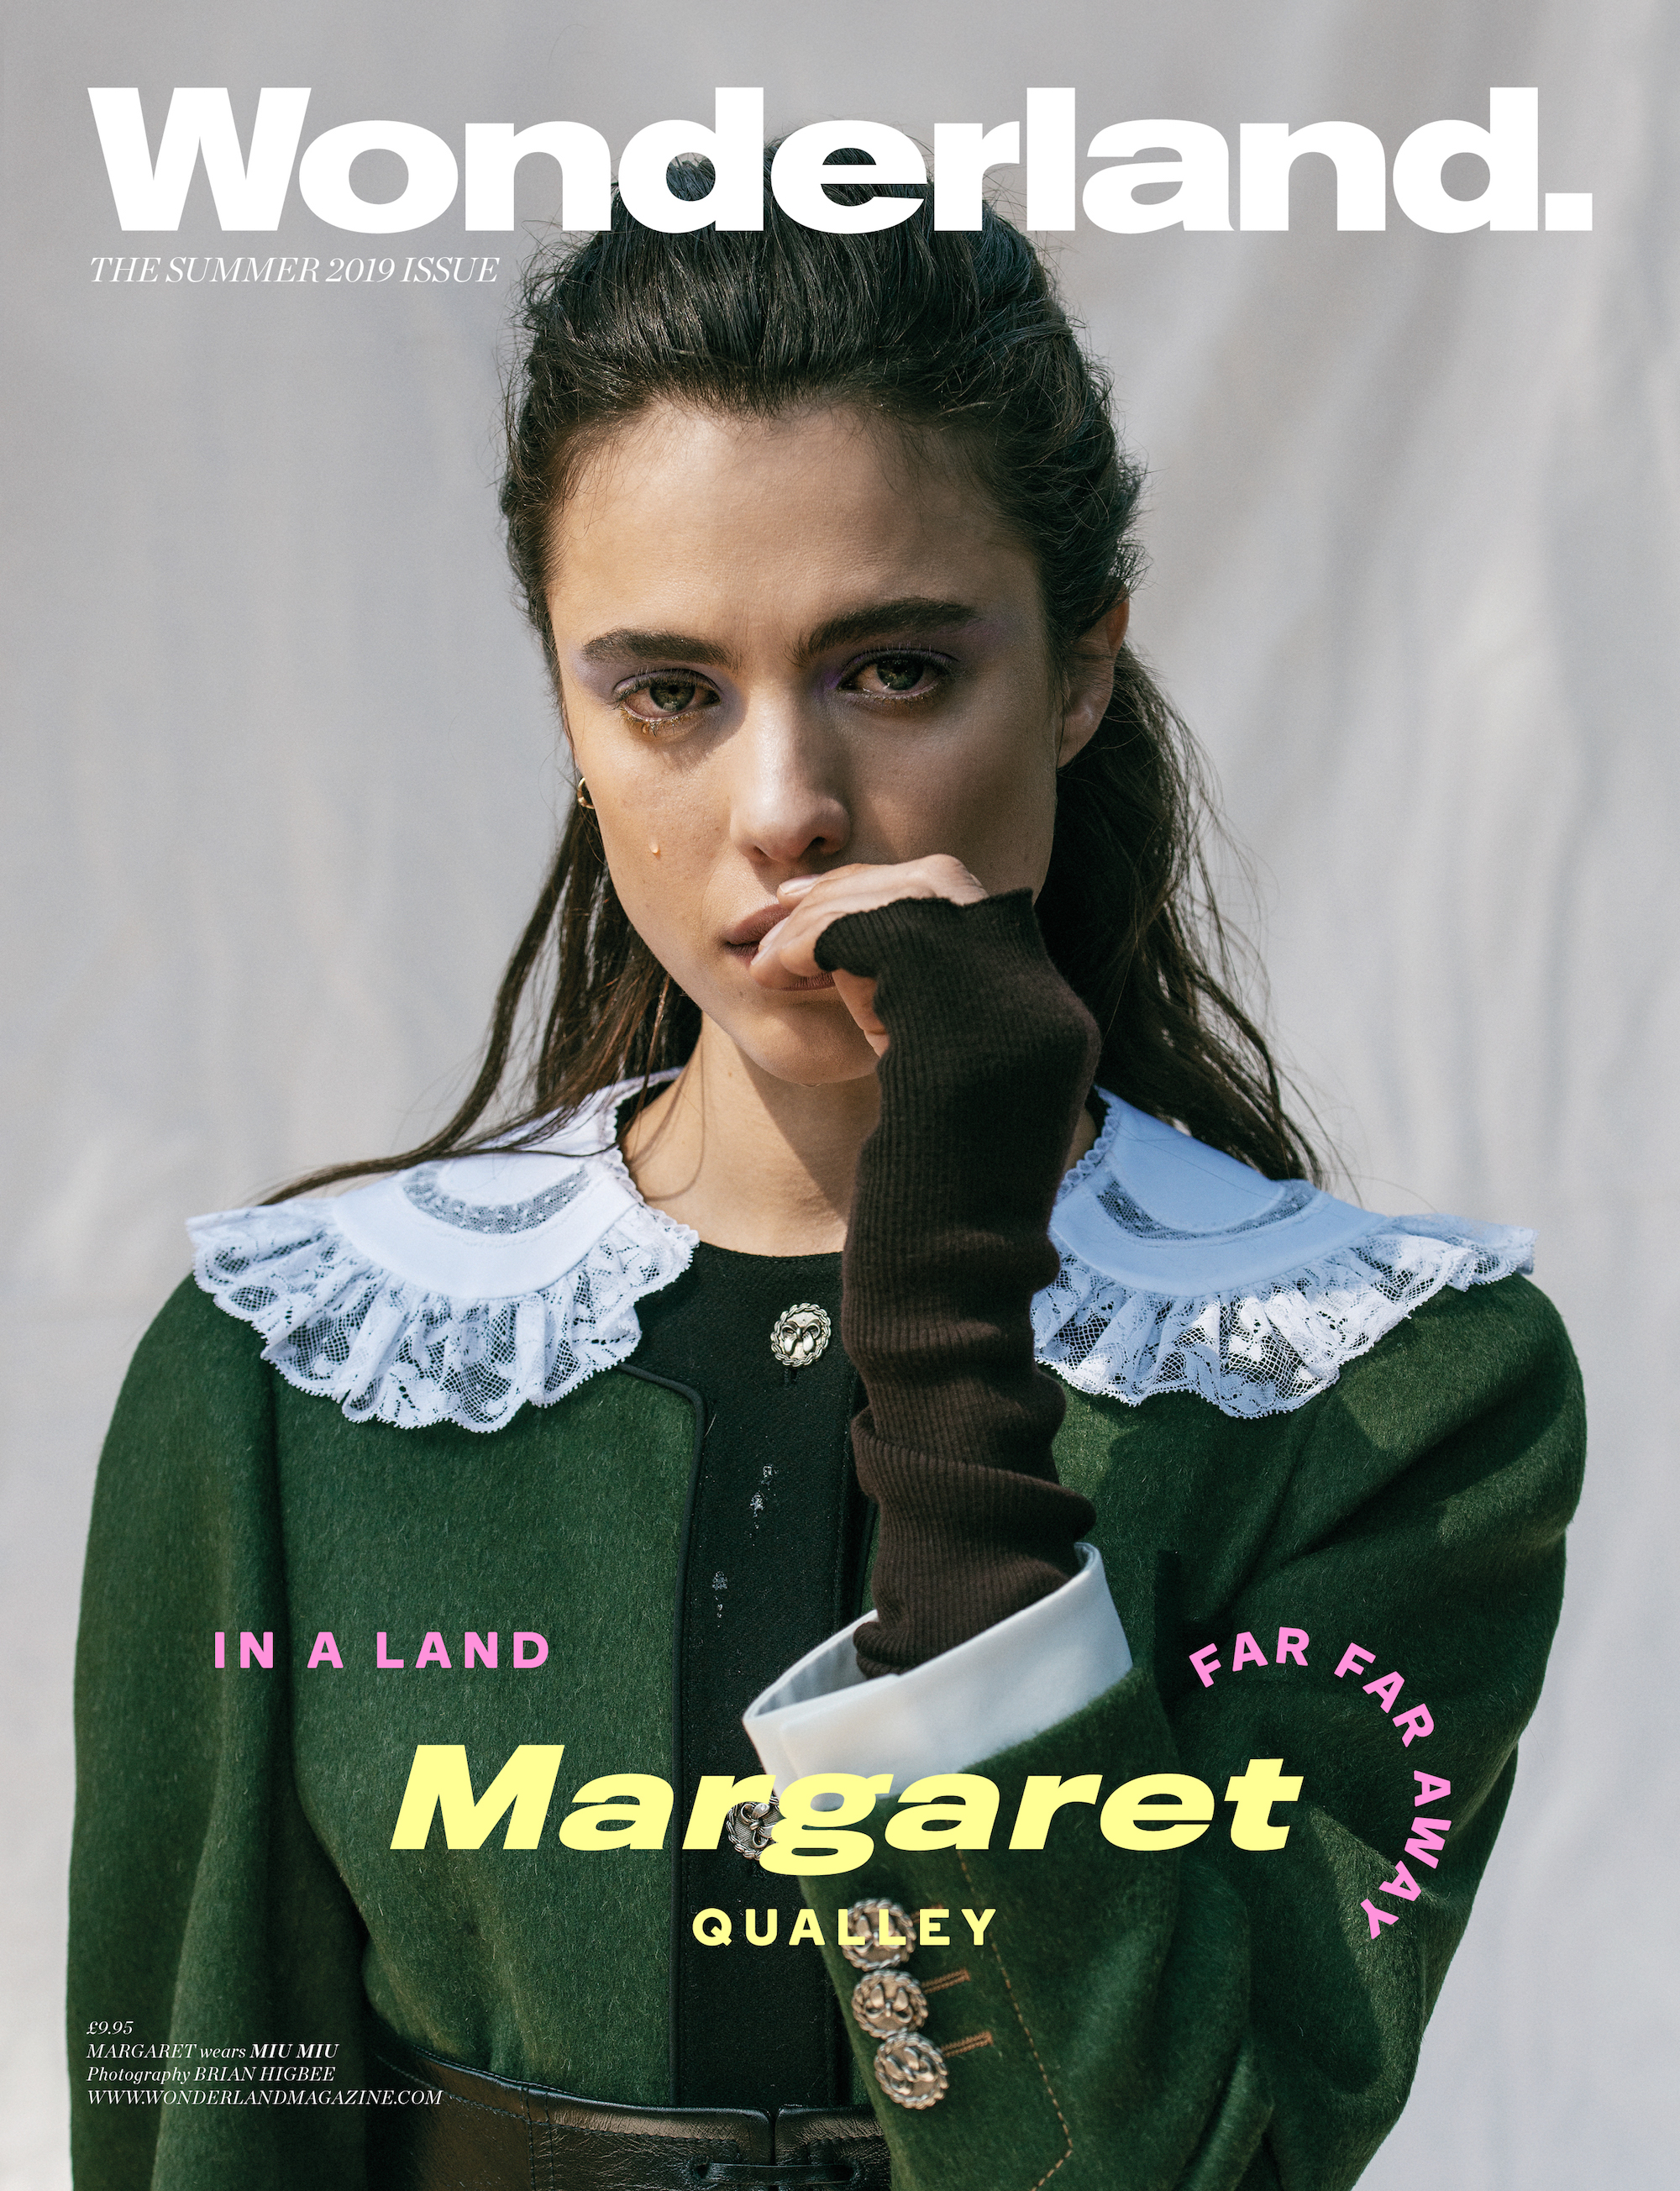 Margaret Qualley on the cover of the Summer 19 issue